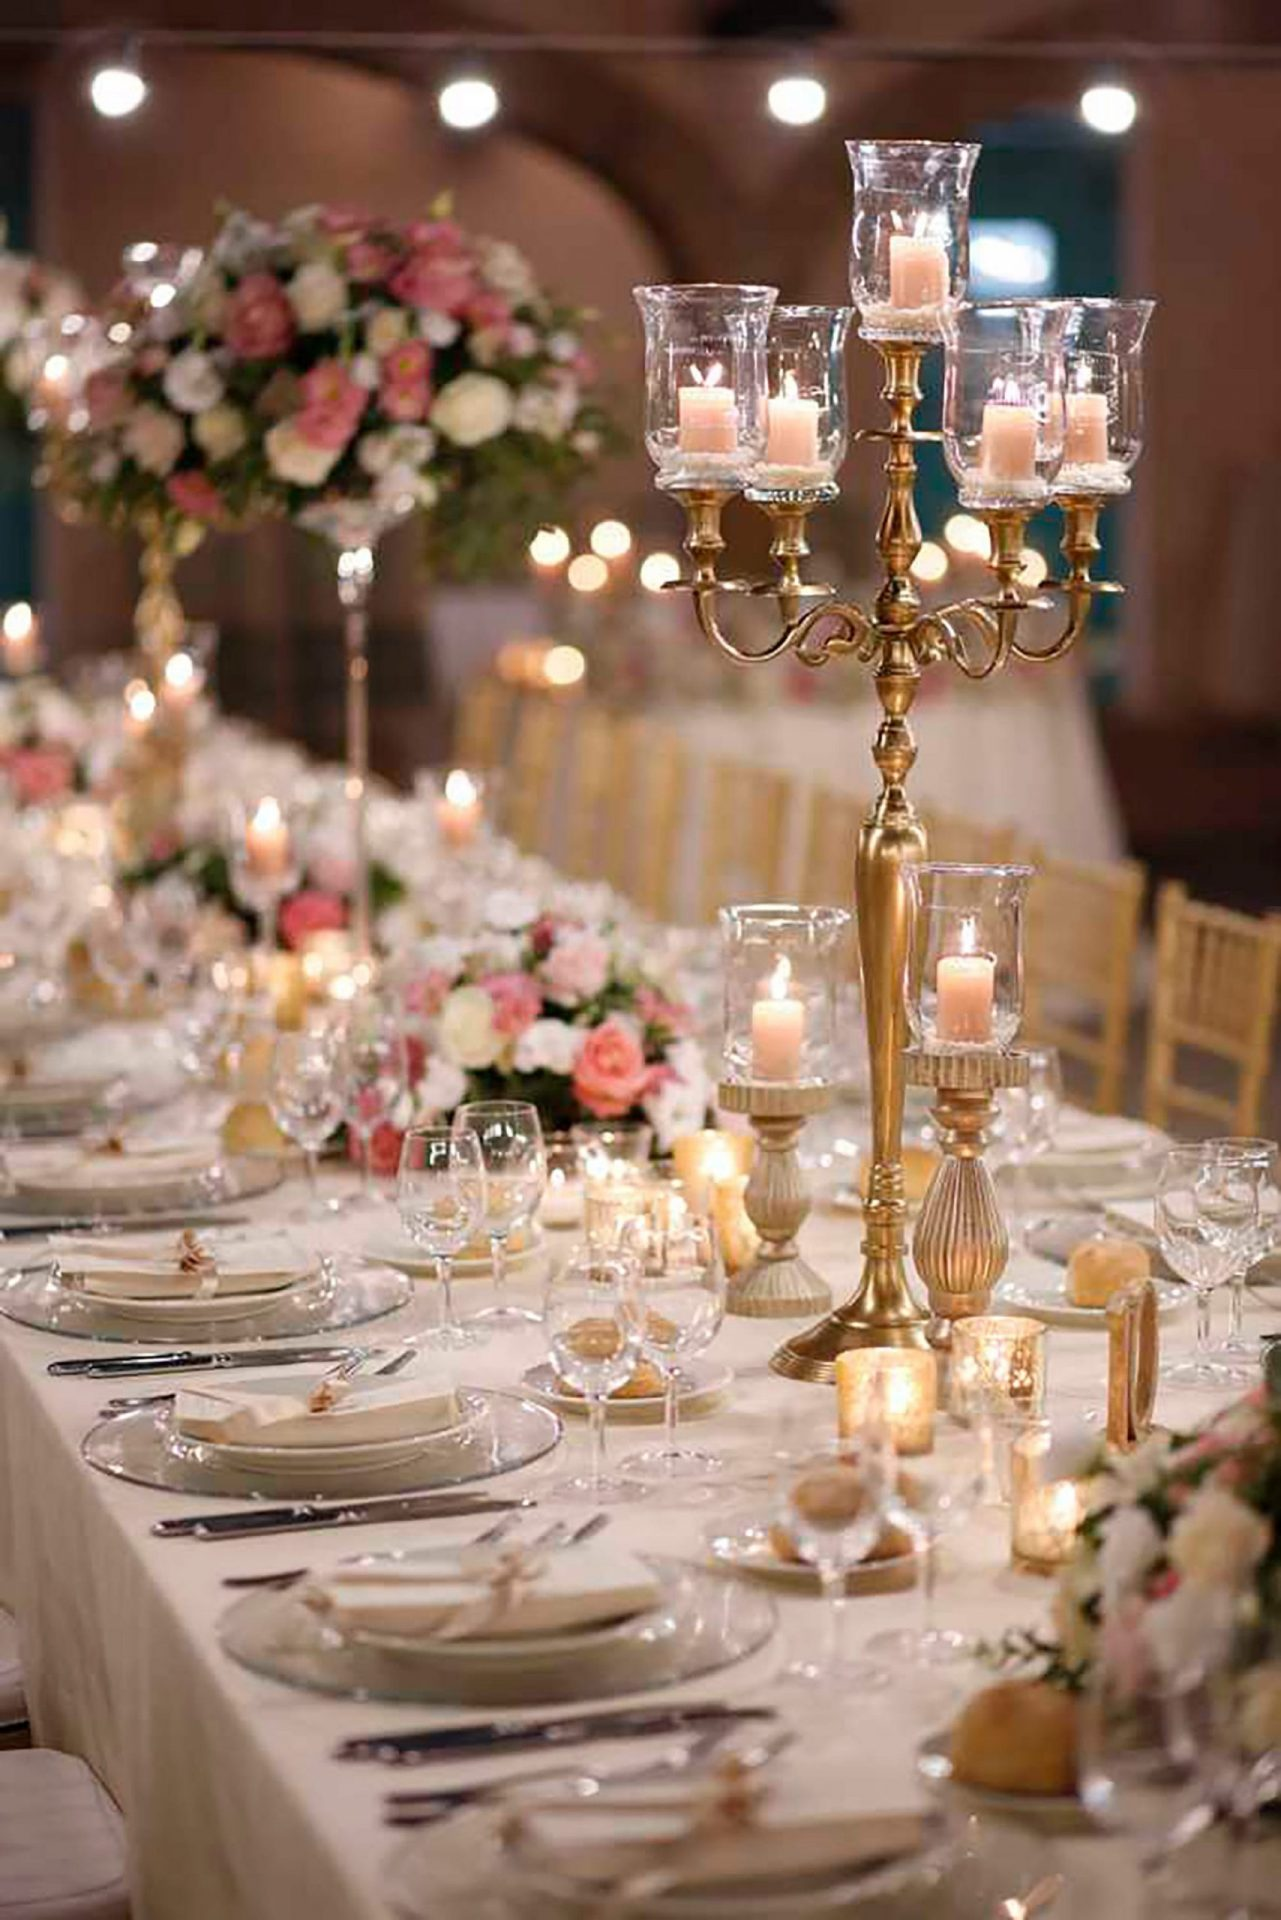 Simona and Giovanni, elegant table decor